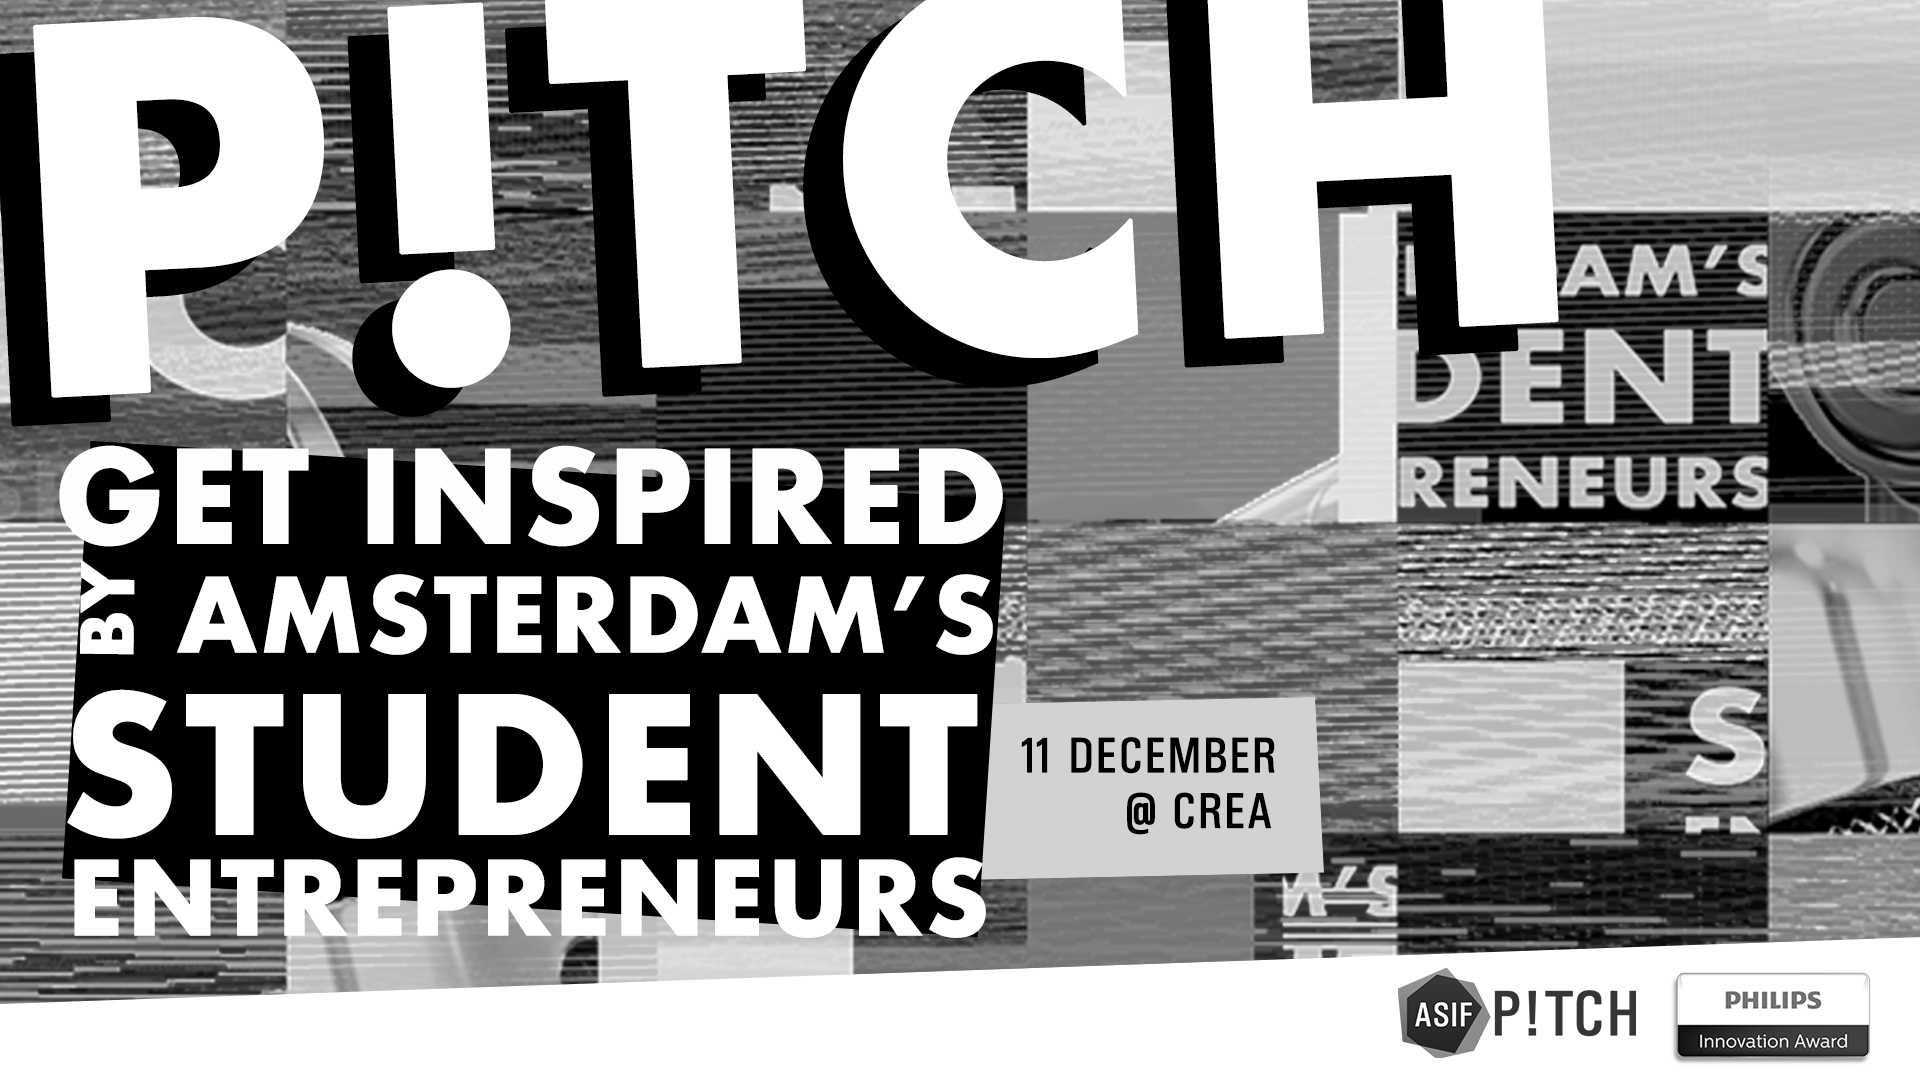 ASIF_Marketing_Pitch_Facebook Banner_PHIA_7_Resized.png